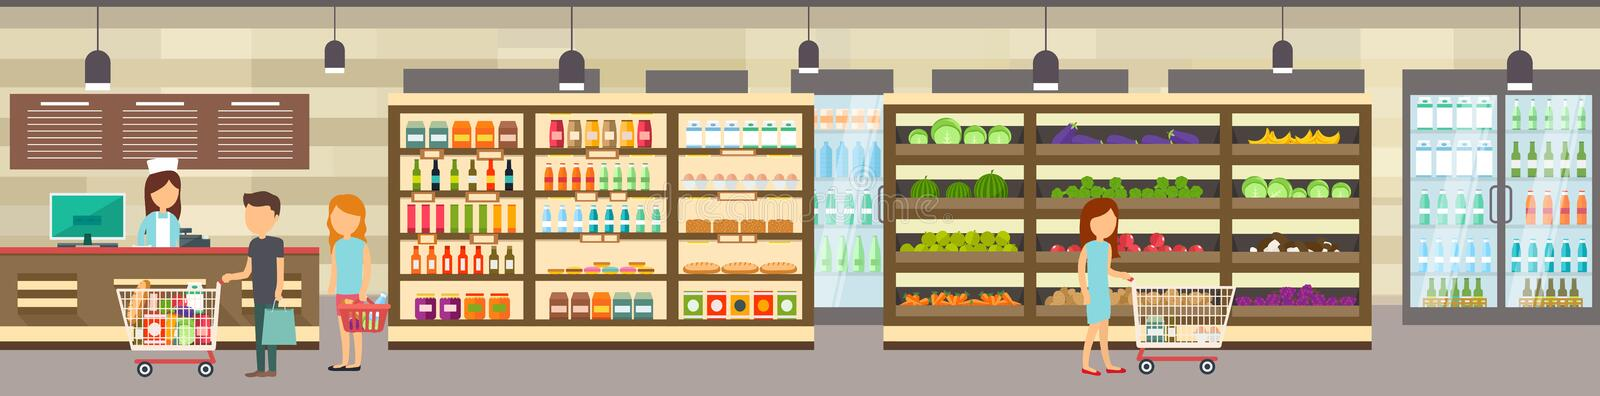 Supermarket store with goods. Big shopping center. Interior store inside. People in line at cash desk. Scene inside shopping mall stock illustration